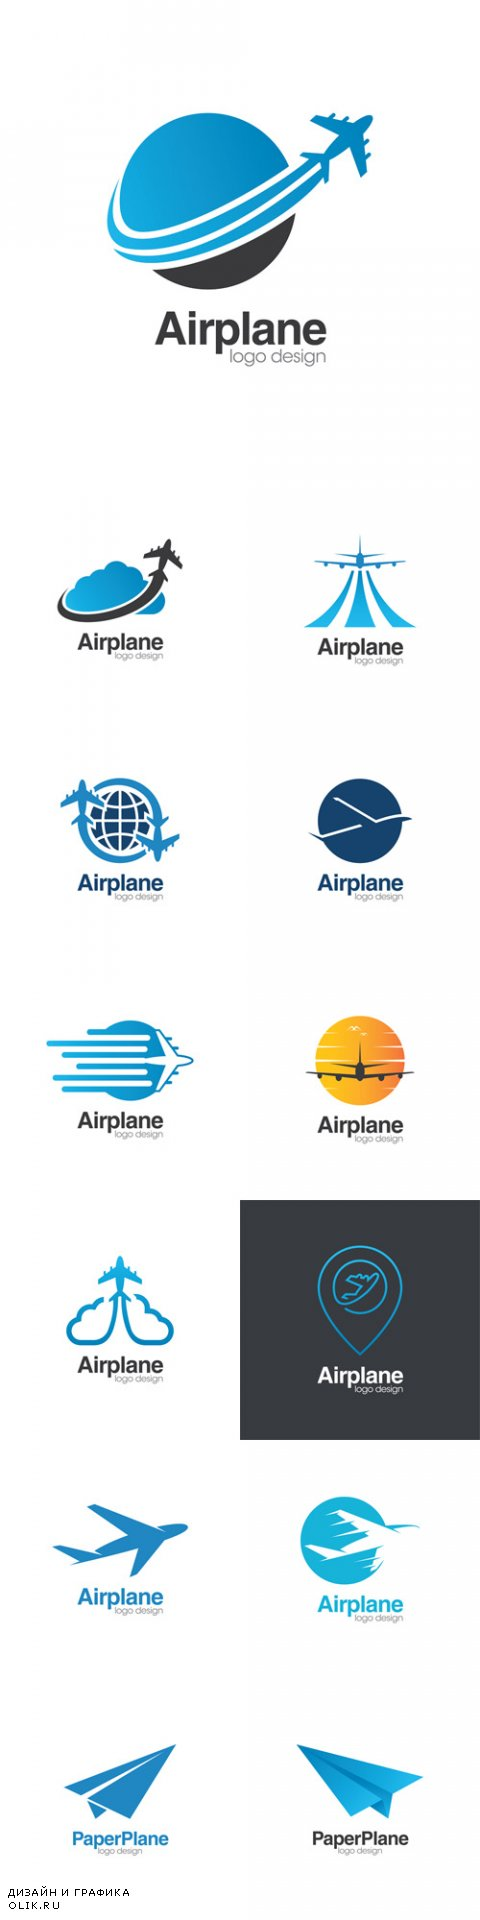 Vector Airplane Creative Concept Logo Design Tempate